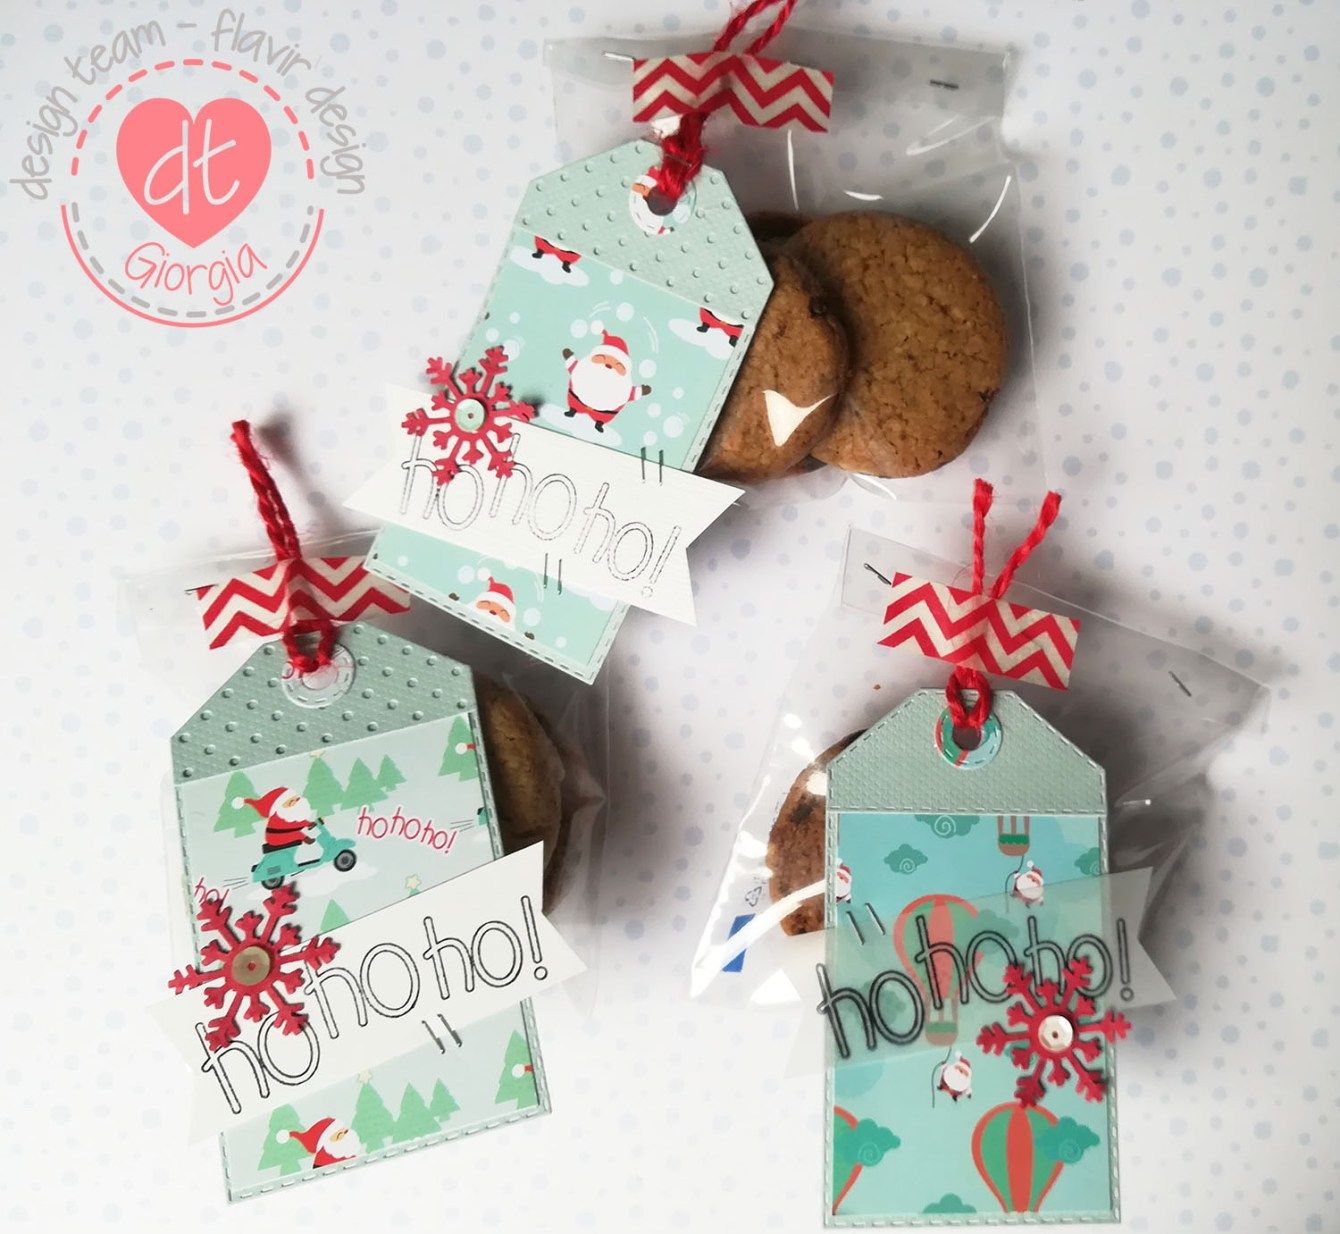 My first project for Flavir Design: I loved baking the cookies and creating the tags with the cute Flavir Design products.